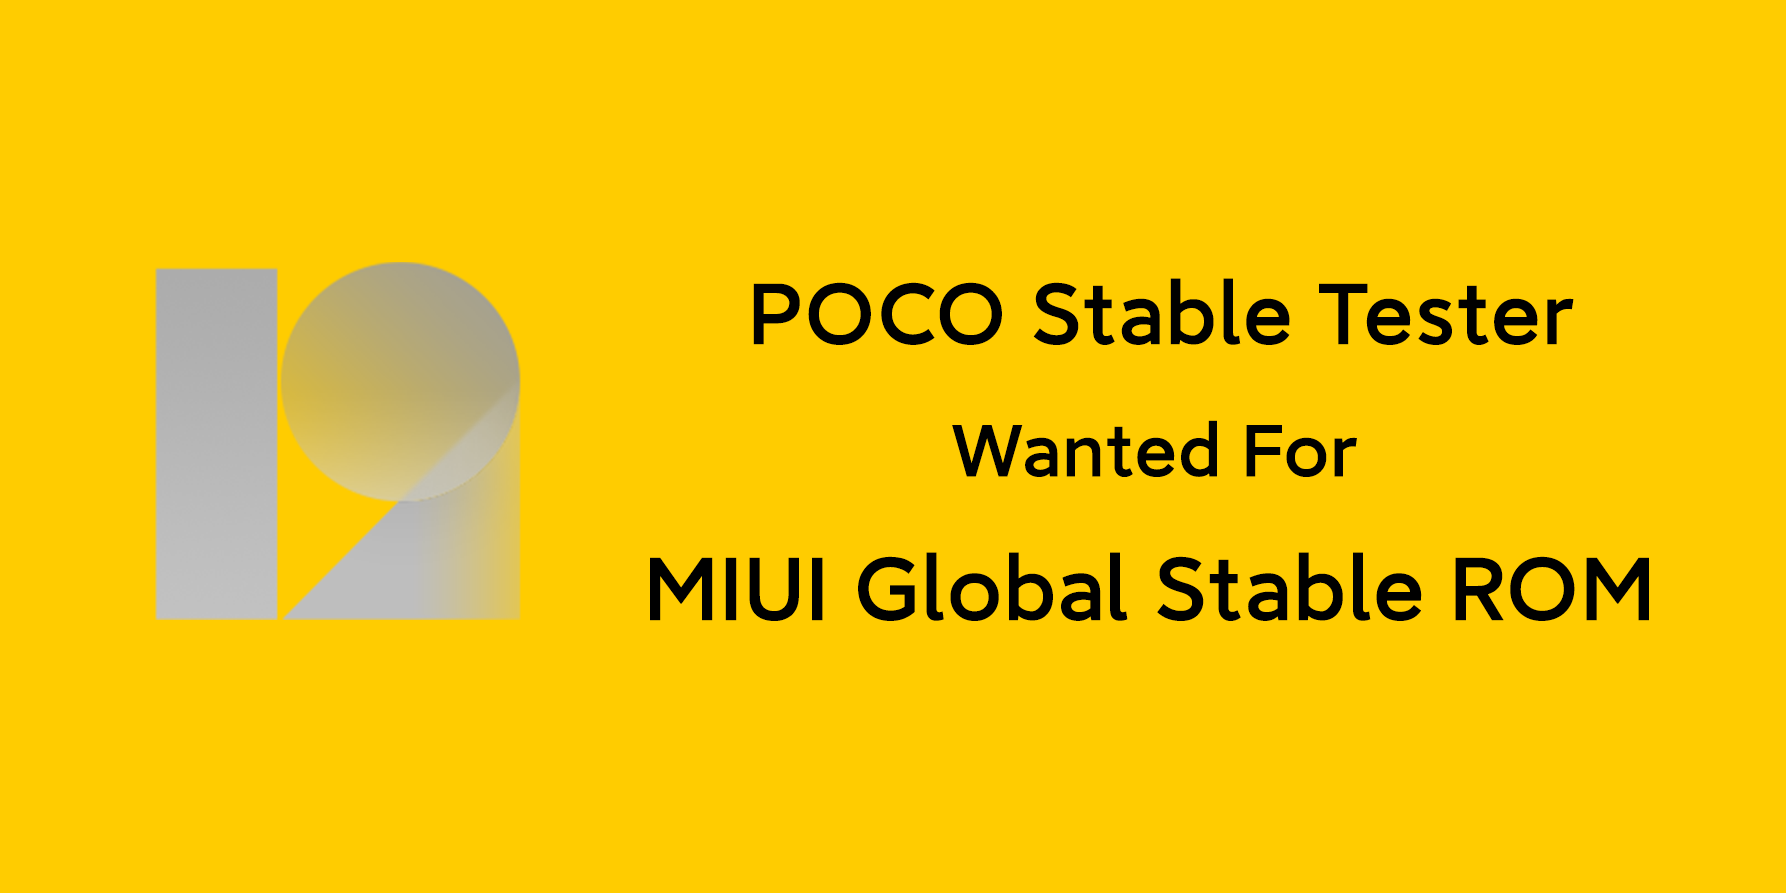 poco tester miui global stable